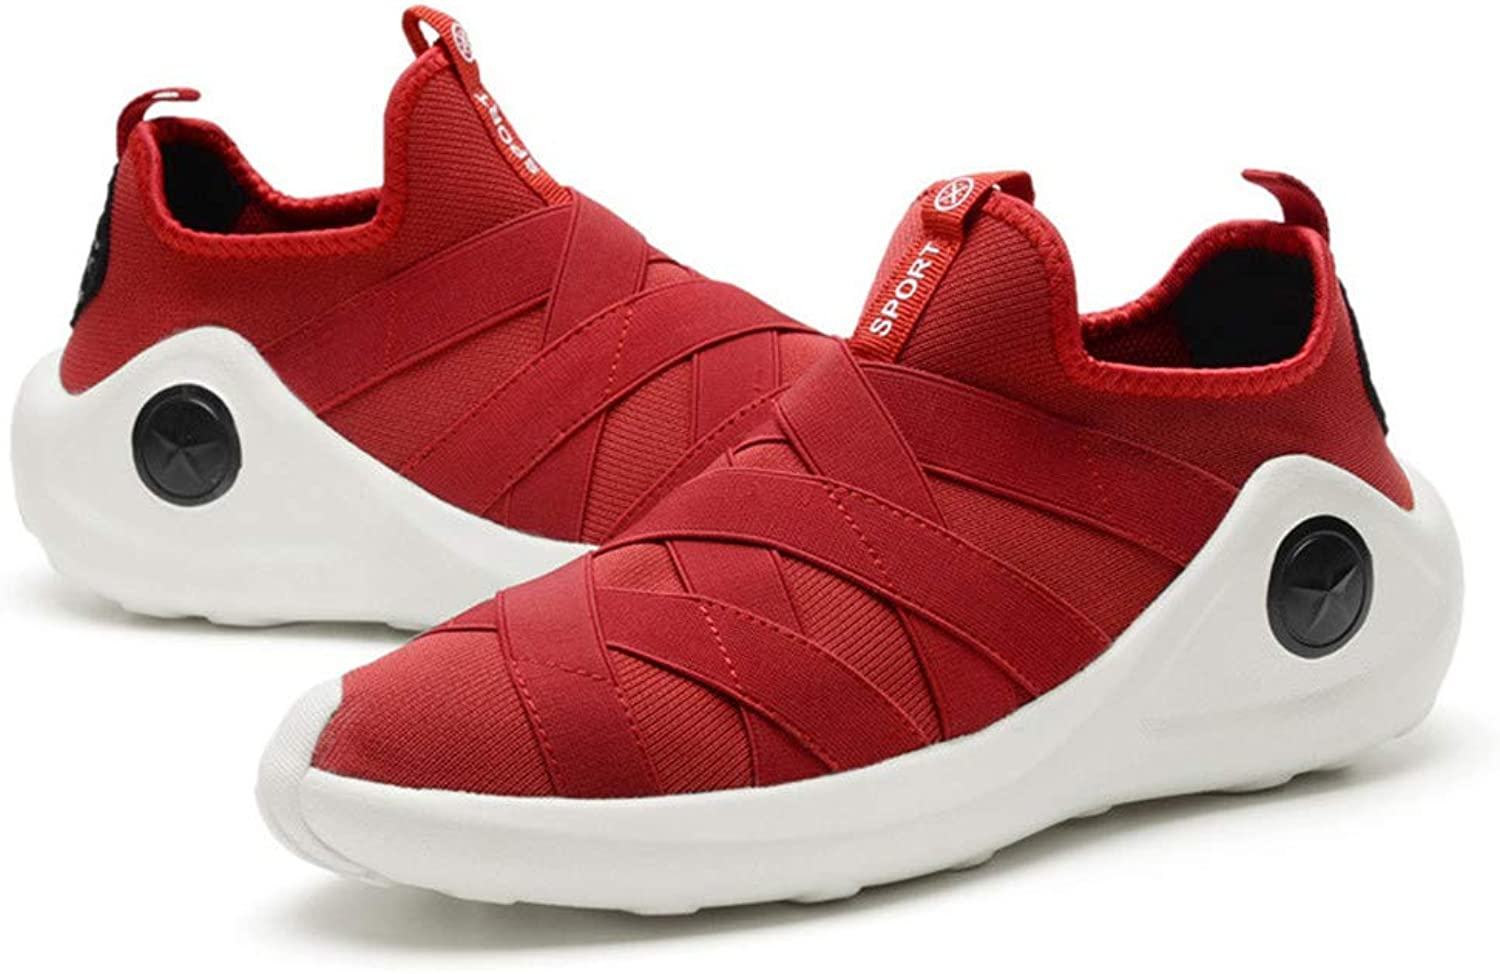 JLCP Mens Casual Athletic Sneakers, low to help Trainers Walking shoes Breathable Lightweight Non-slip Gym travel Running Outdoor Sports shoes,Red,40